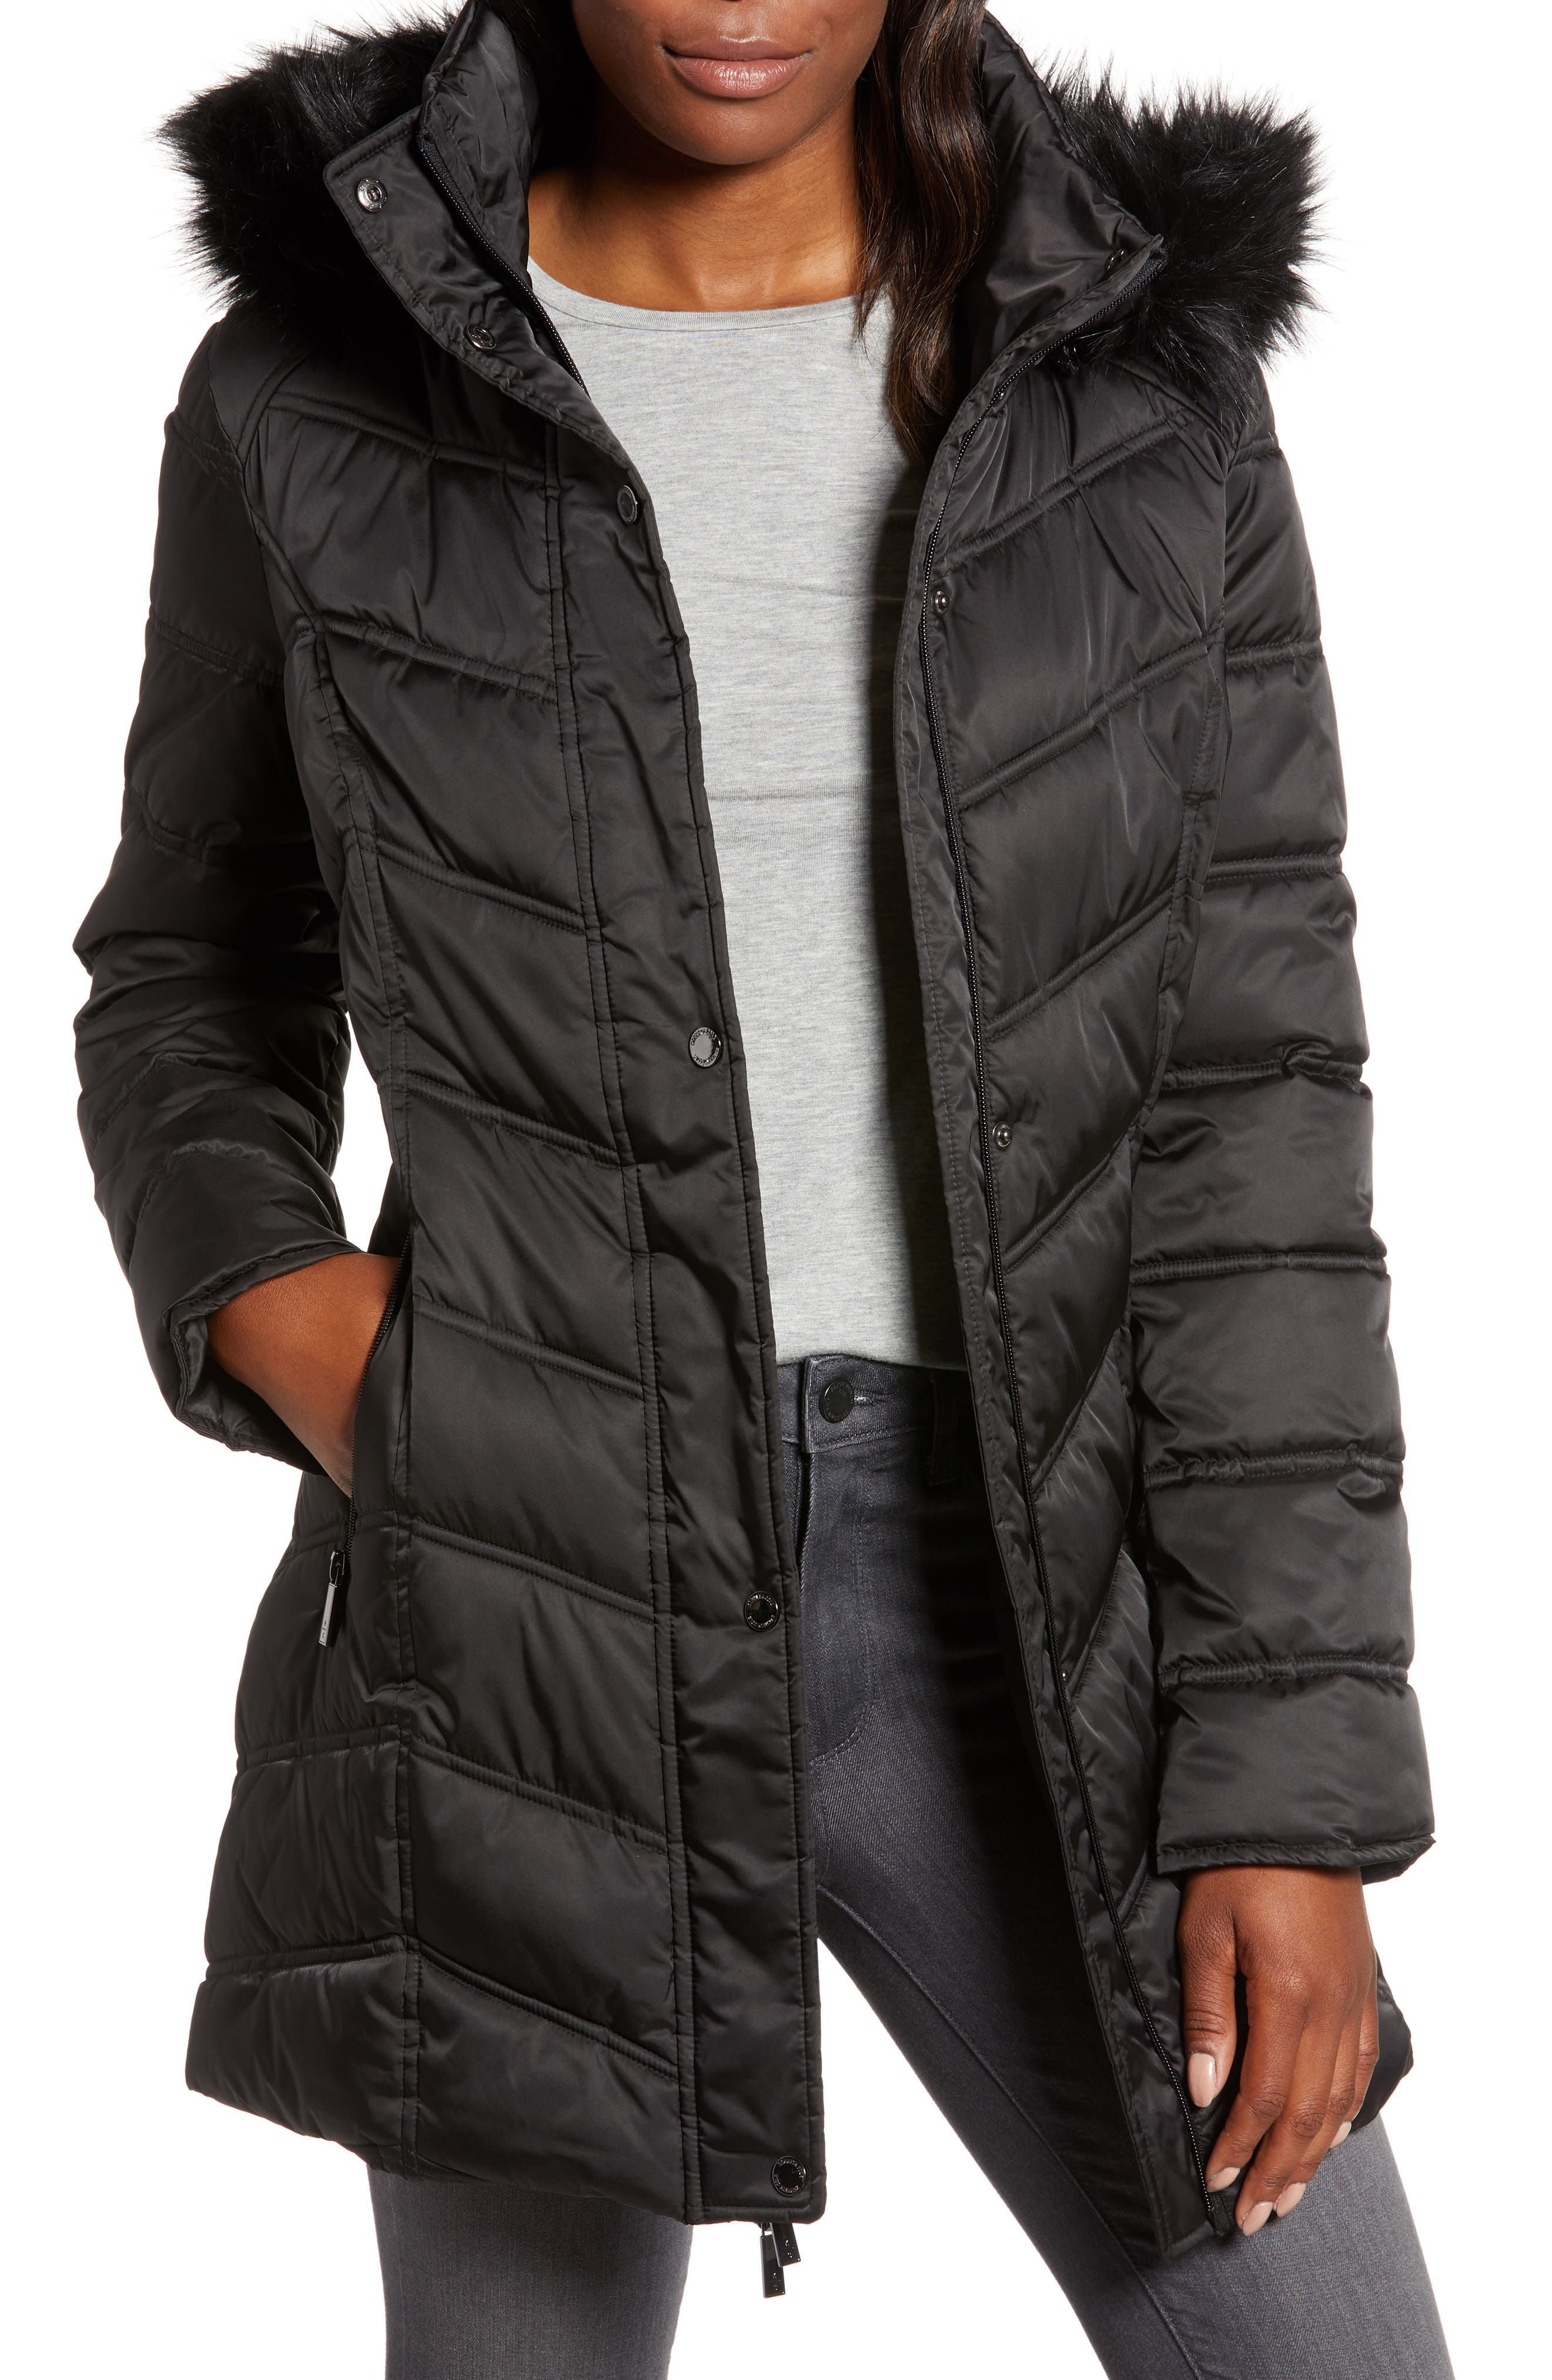 Faux Fur Trim Puffer Jacket,                             Main thumbnail 1, color,                             BLACK